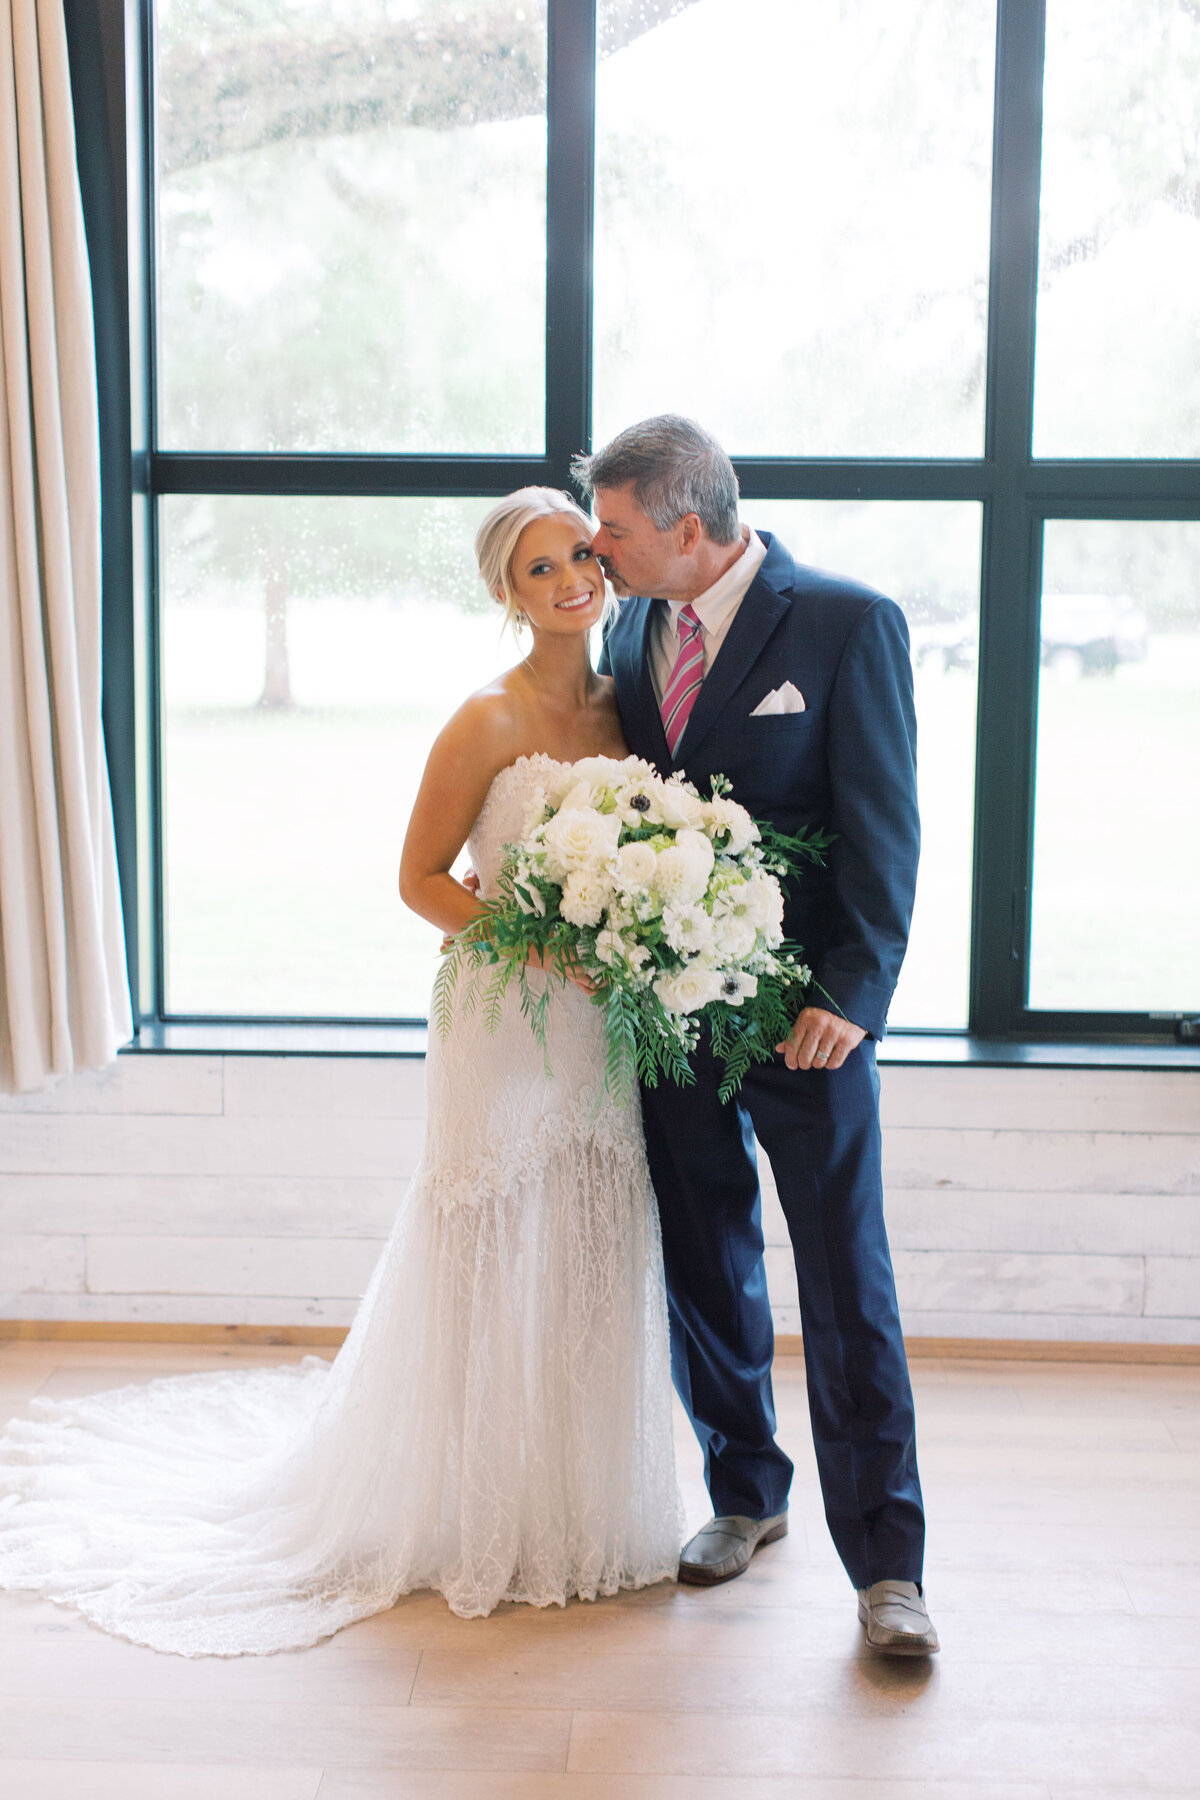 Melton_Wedding__Middleton_Place_Plantation_Charleston_South_Carolina_Jacksonville_Florida_Devon_Donnahoo_Photography__0193